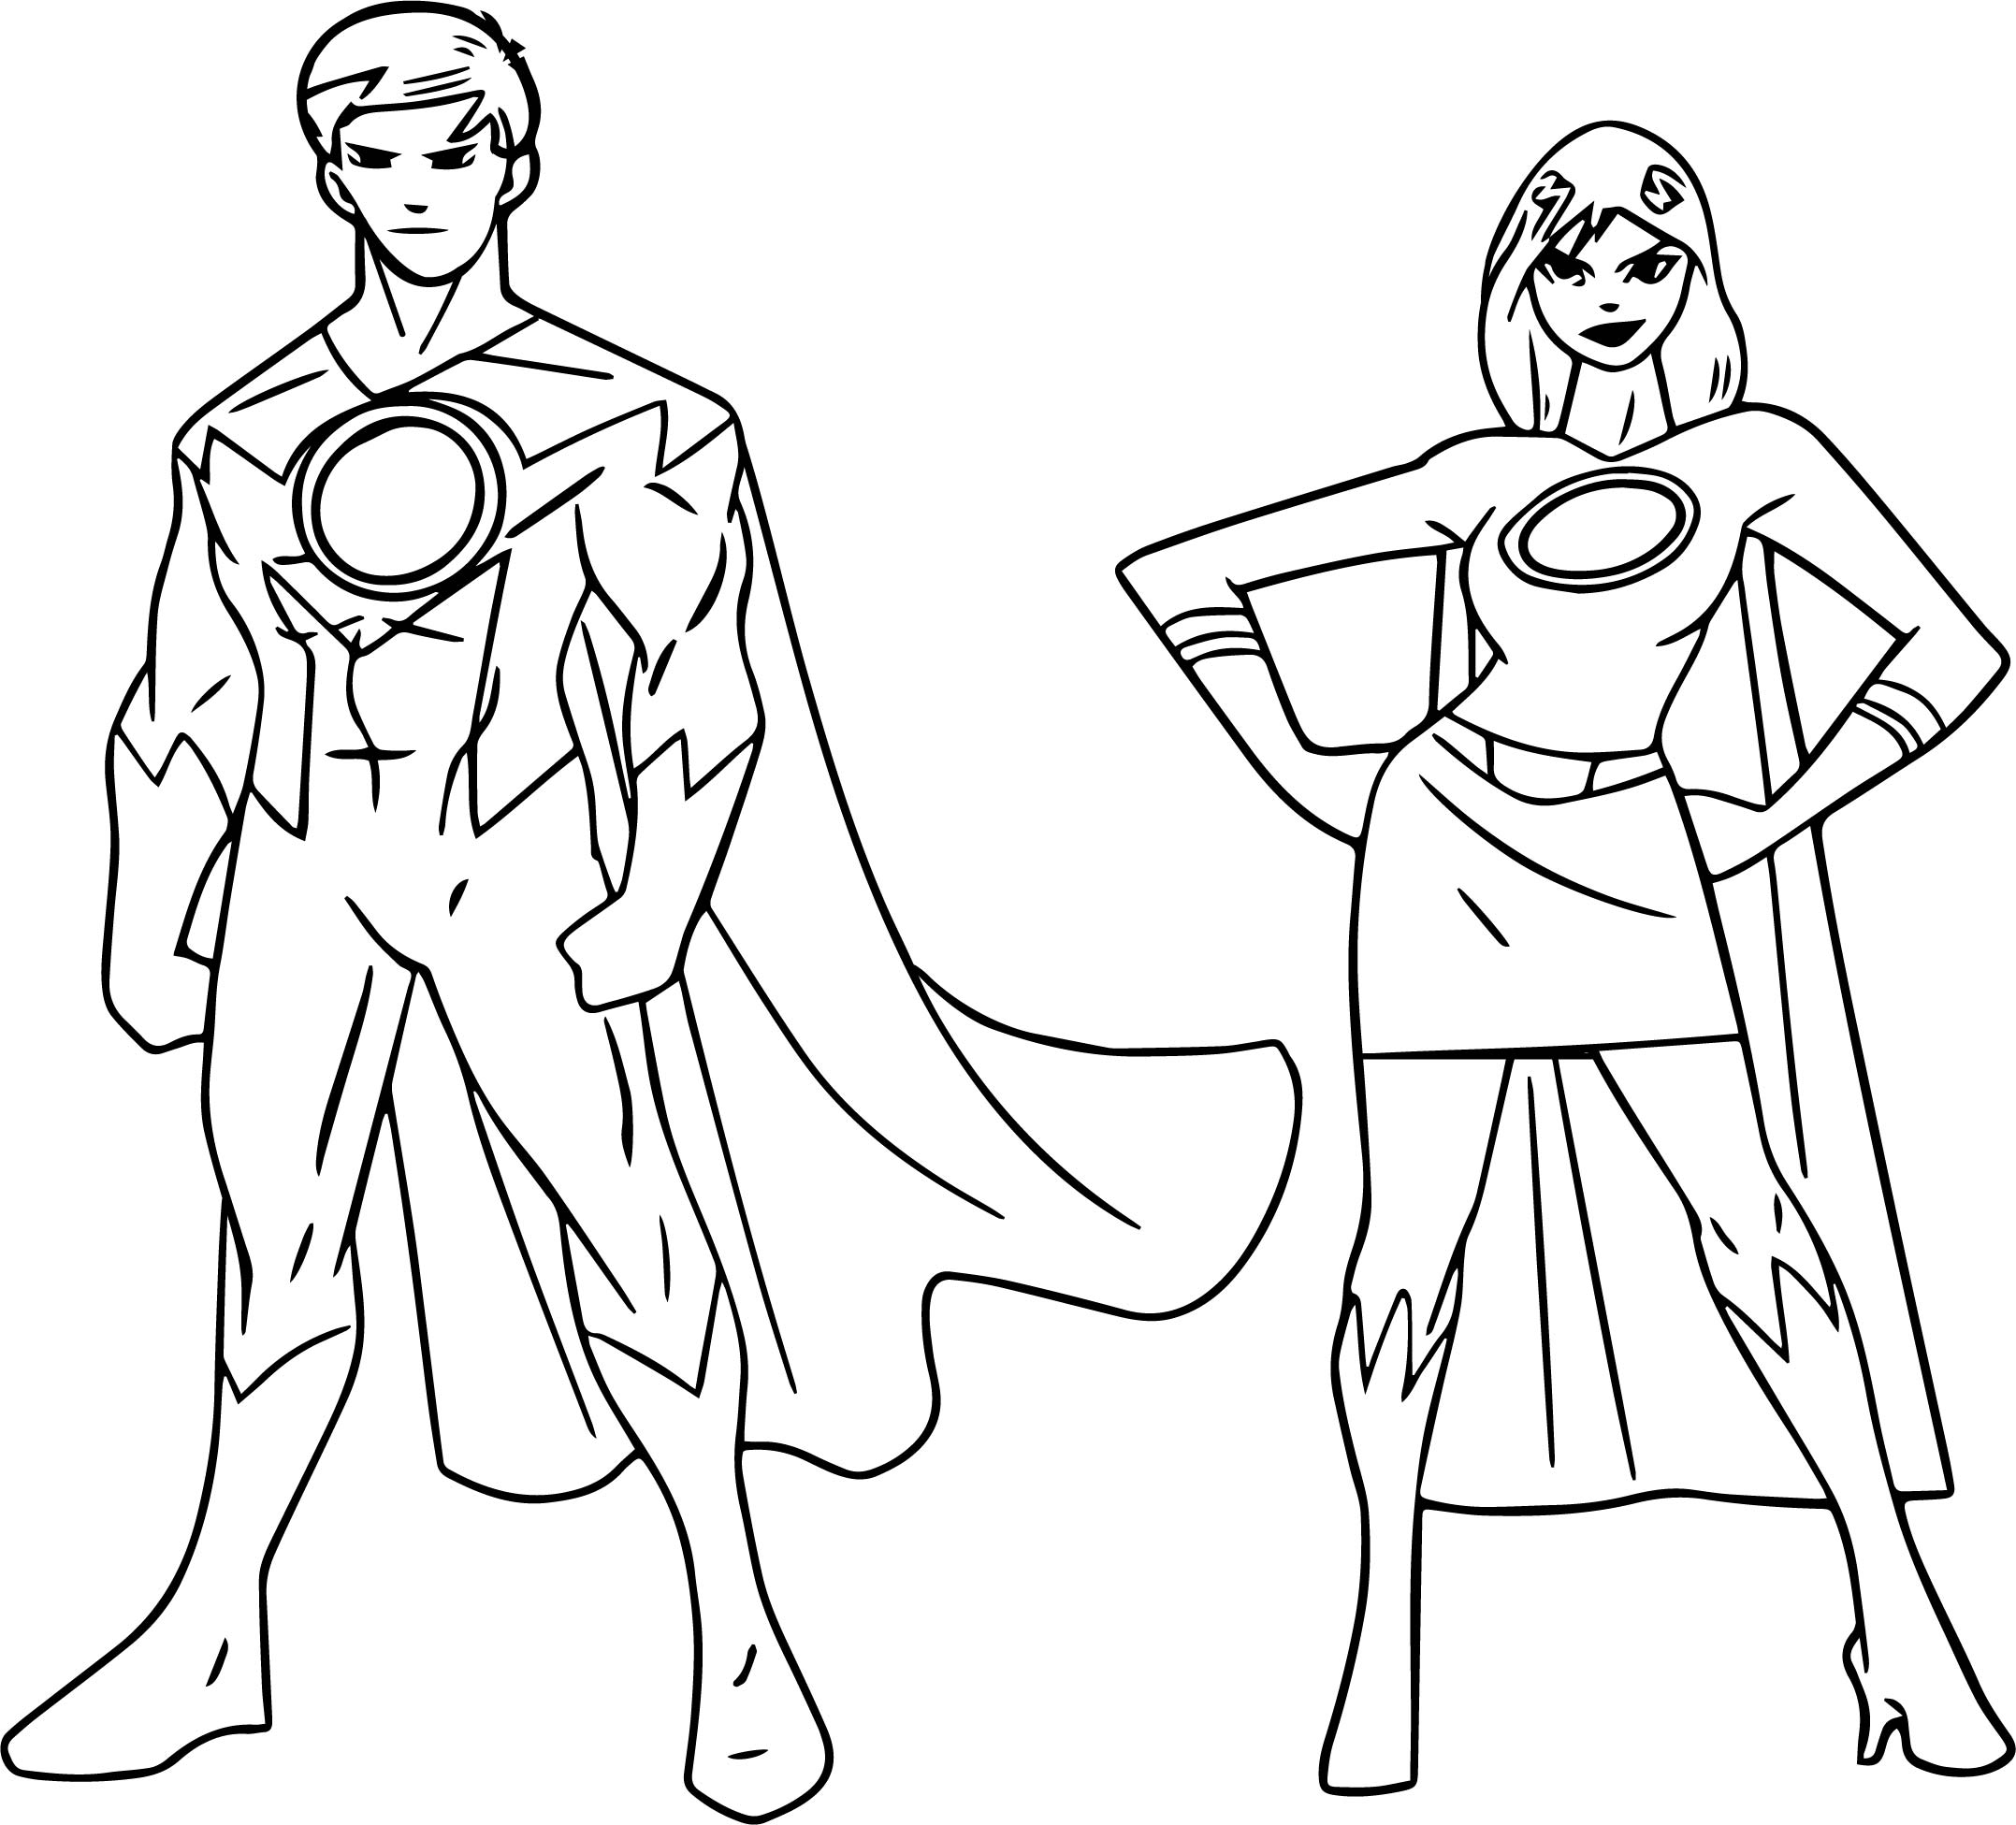 girl superheroes coloring pages - powered superheroes super hero girl boy coloring page